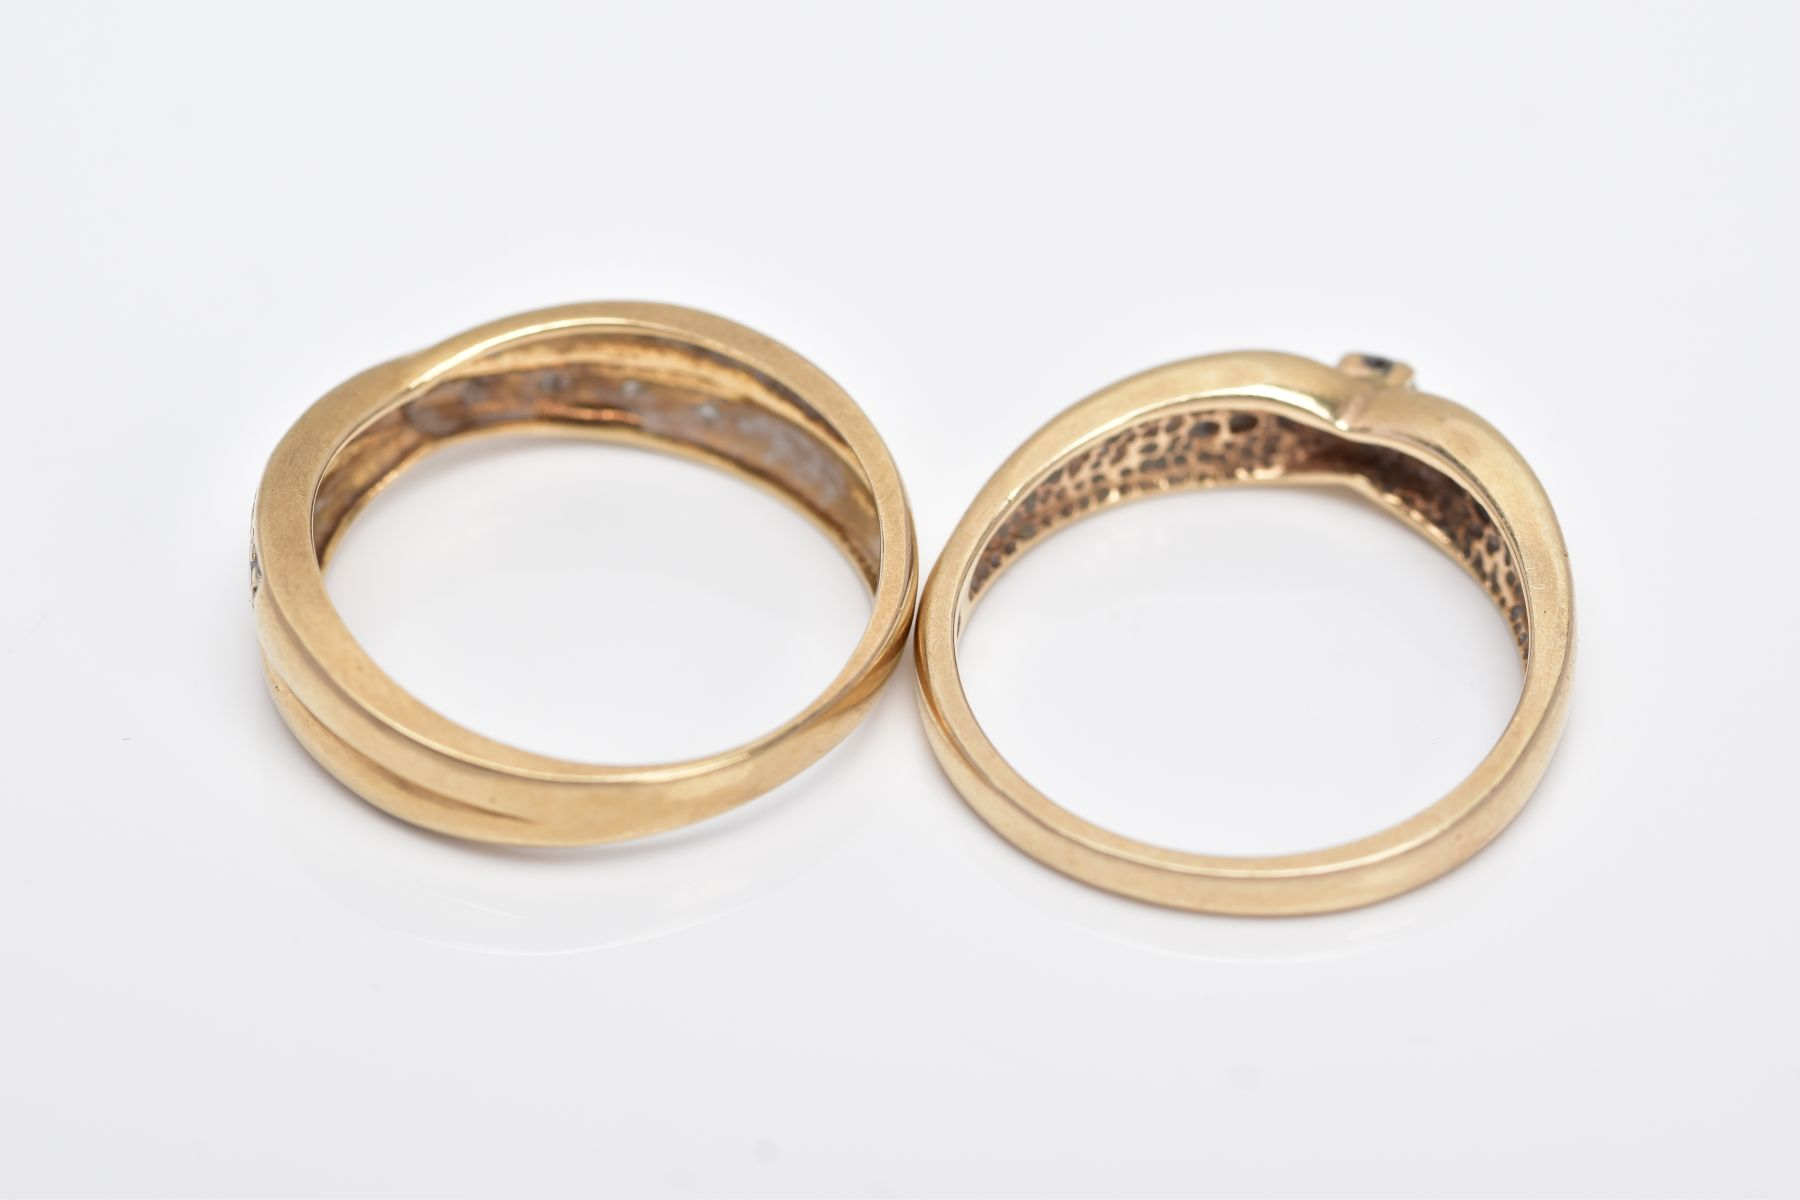 TWO 9CT GOLD DIAMOND RINGS, the first designed with a row of seven round brilliant cut diamonds, - Image 4 of 5